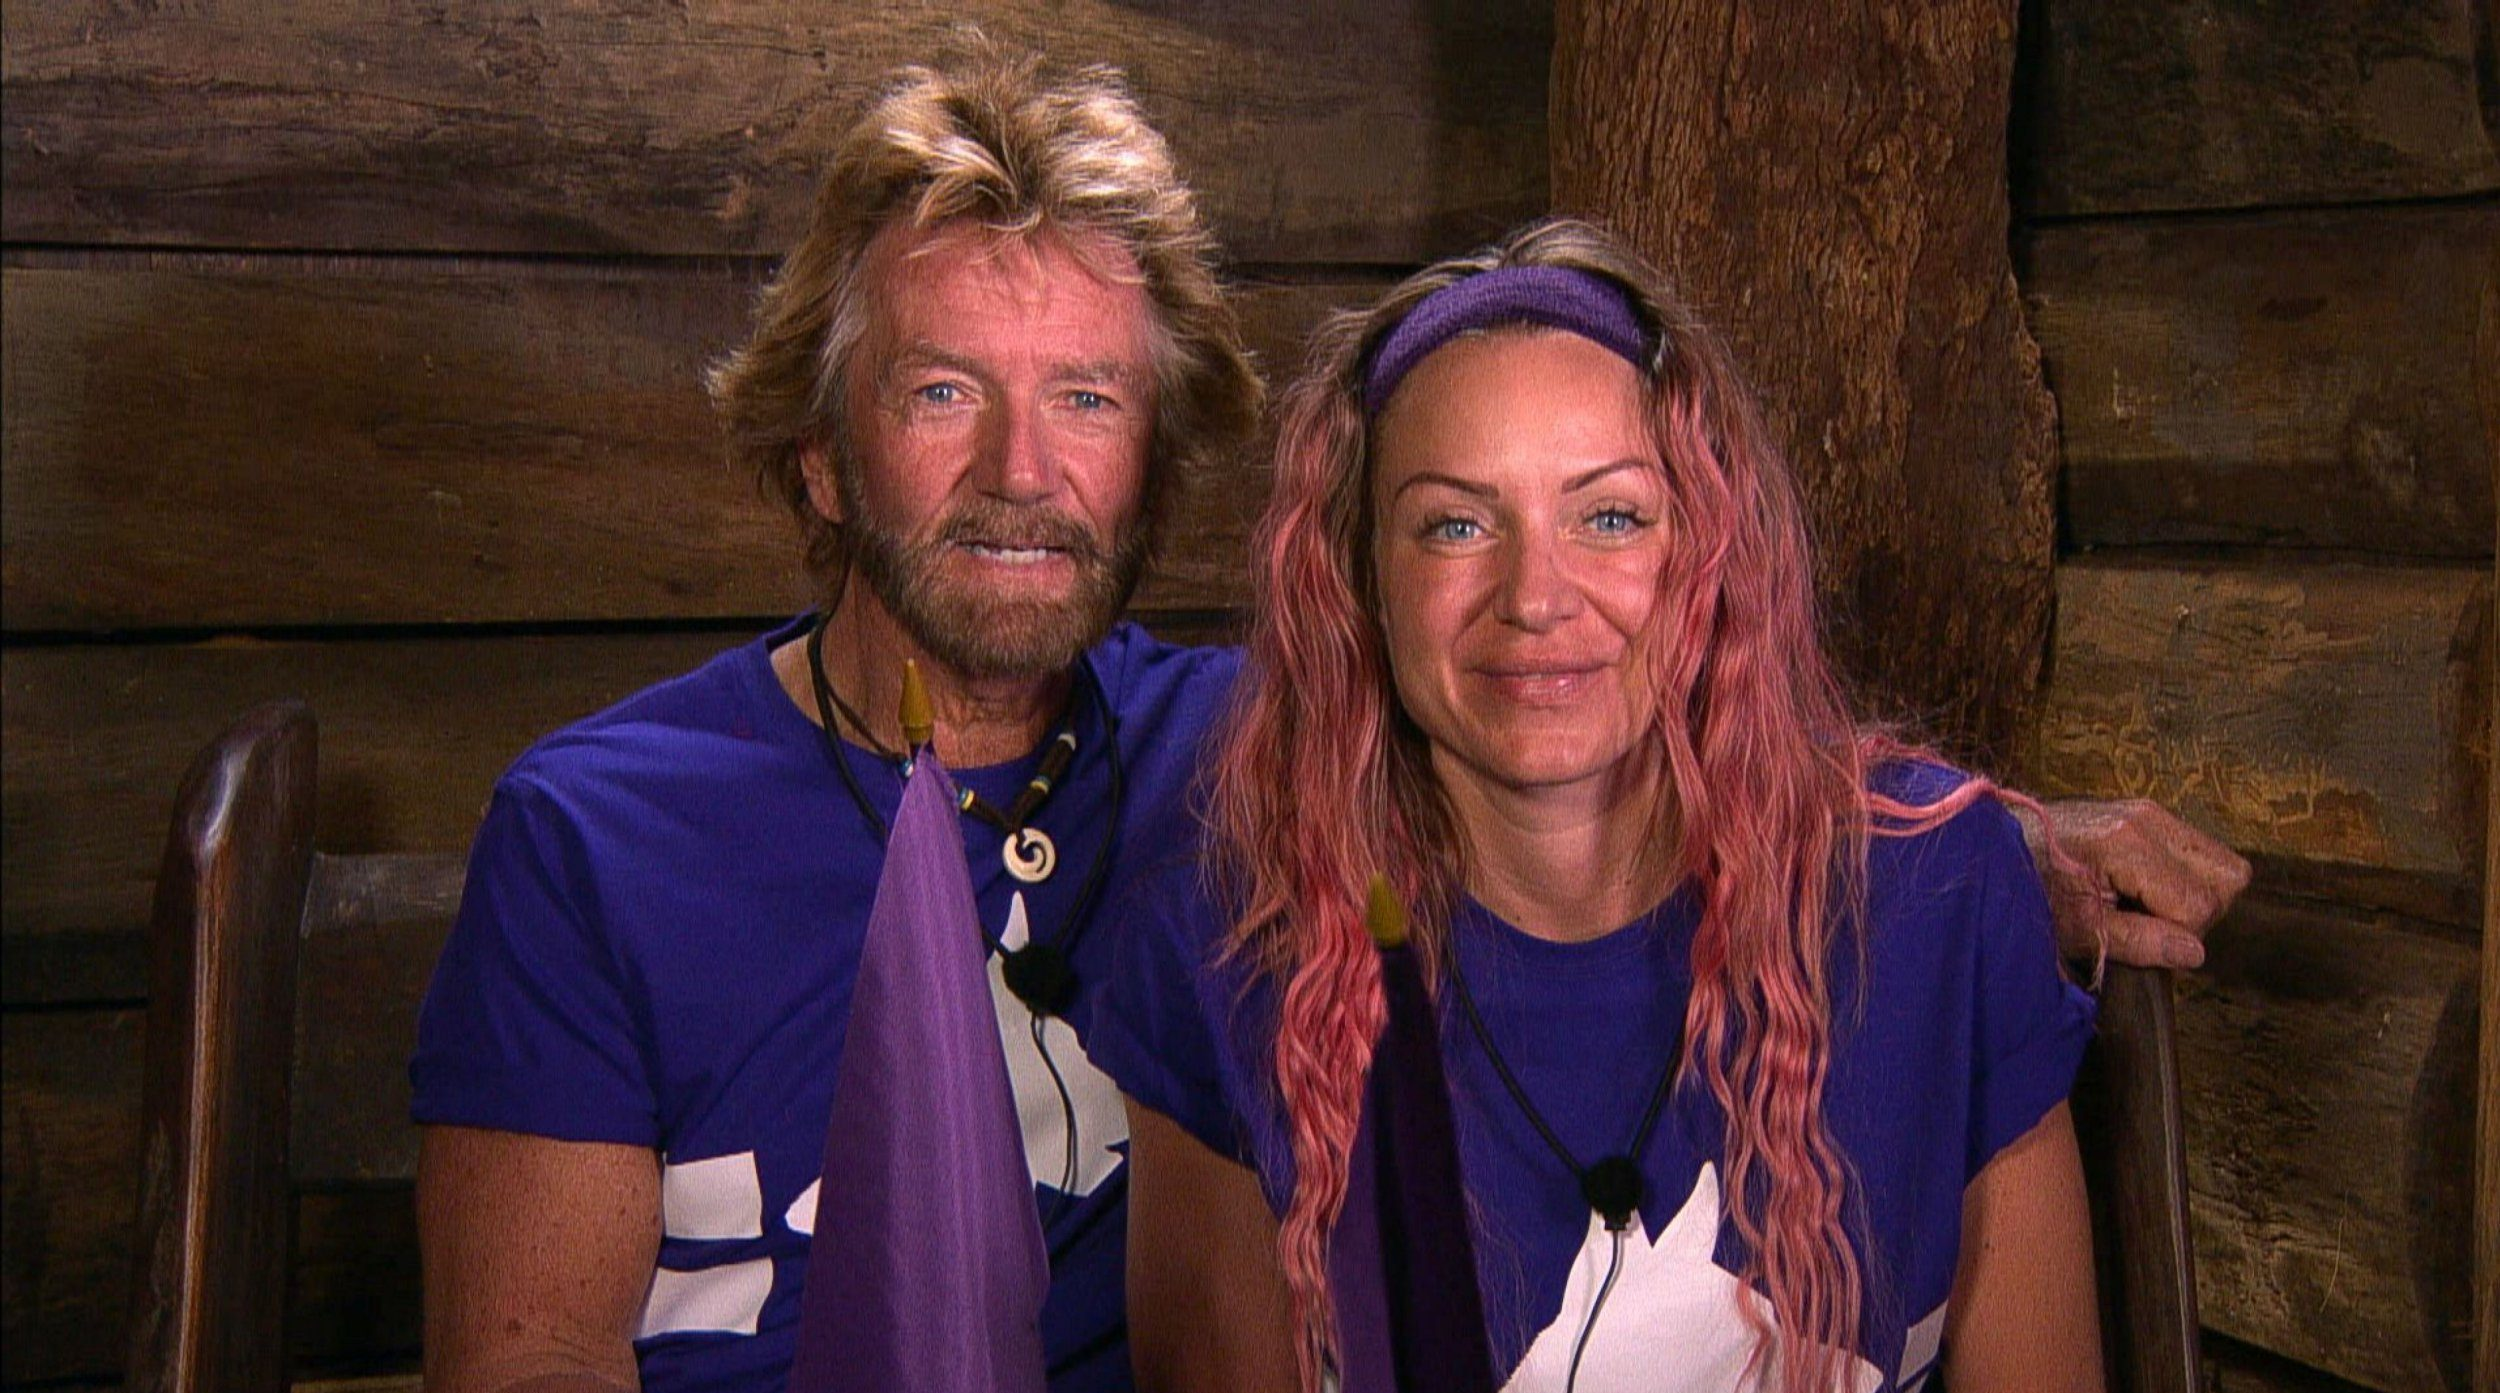 No one knows how to feel as Noel Edmonds says he wants to take Rita 'behind the bike sheds'